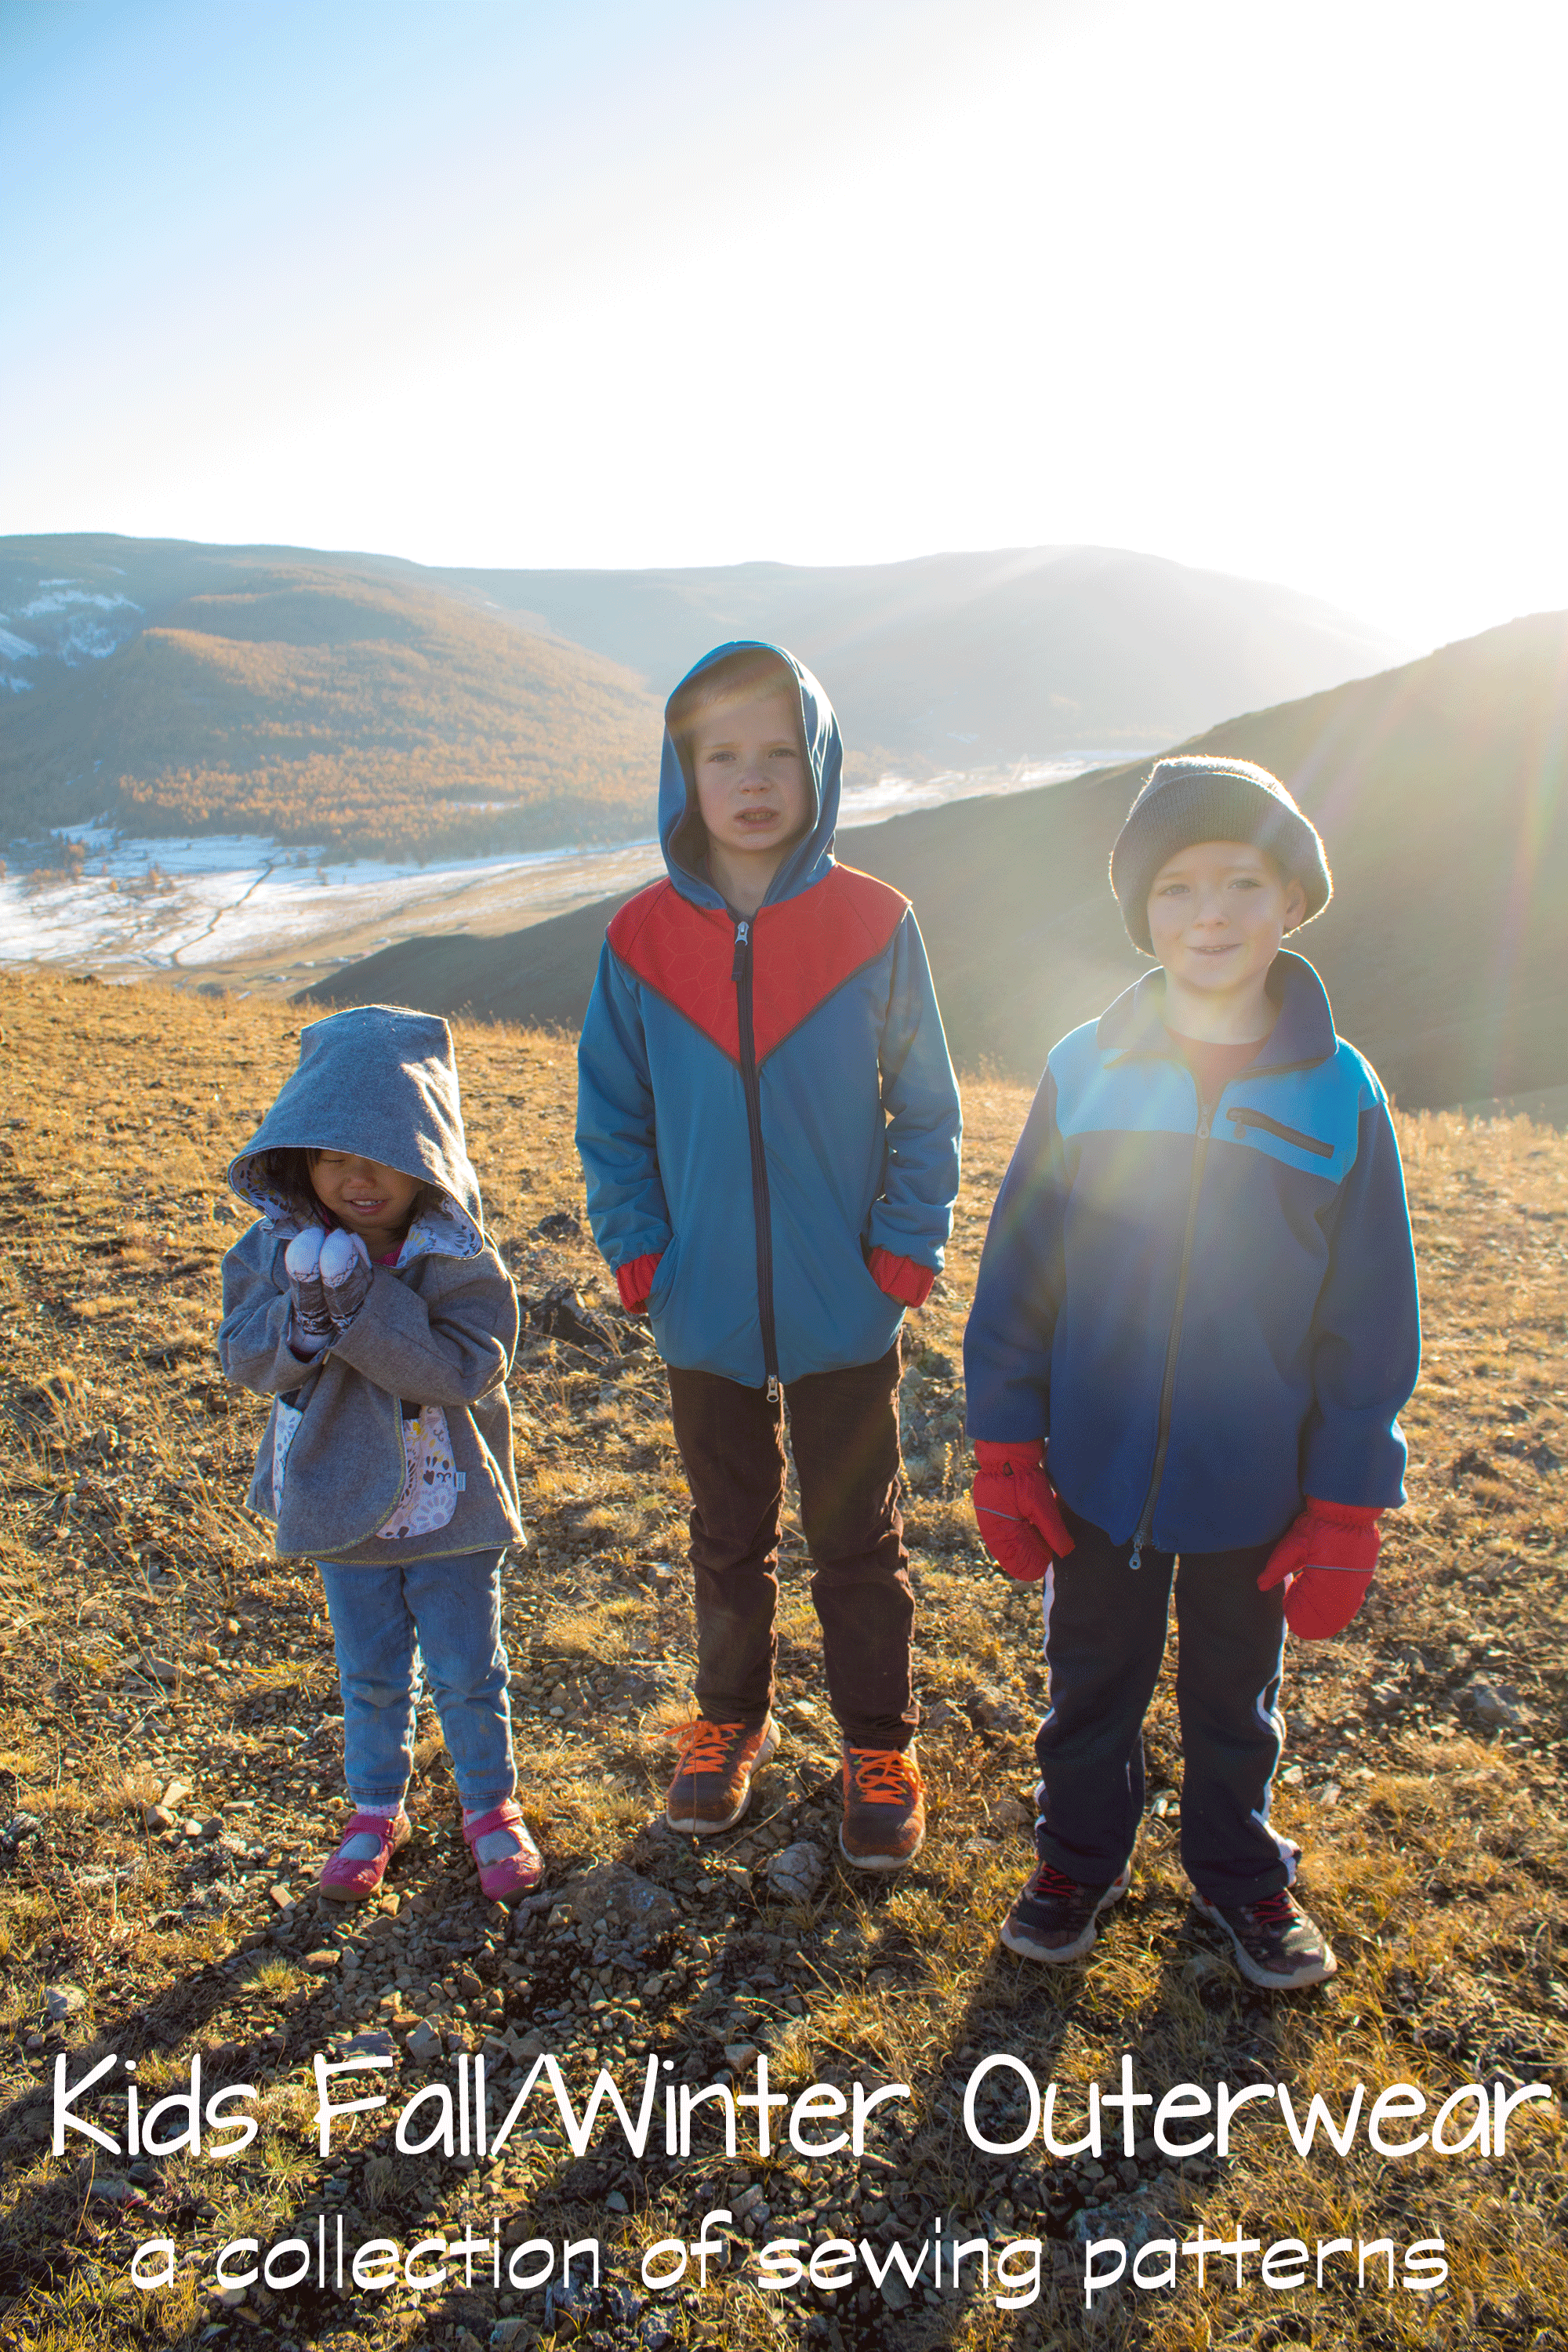 Kids Fall Winter Outerwear sewing patterns from Nap-Time Creations